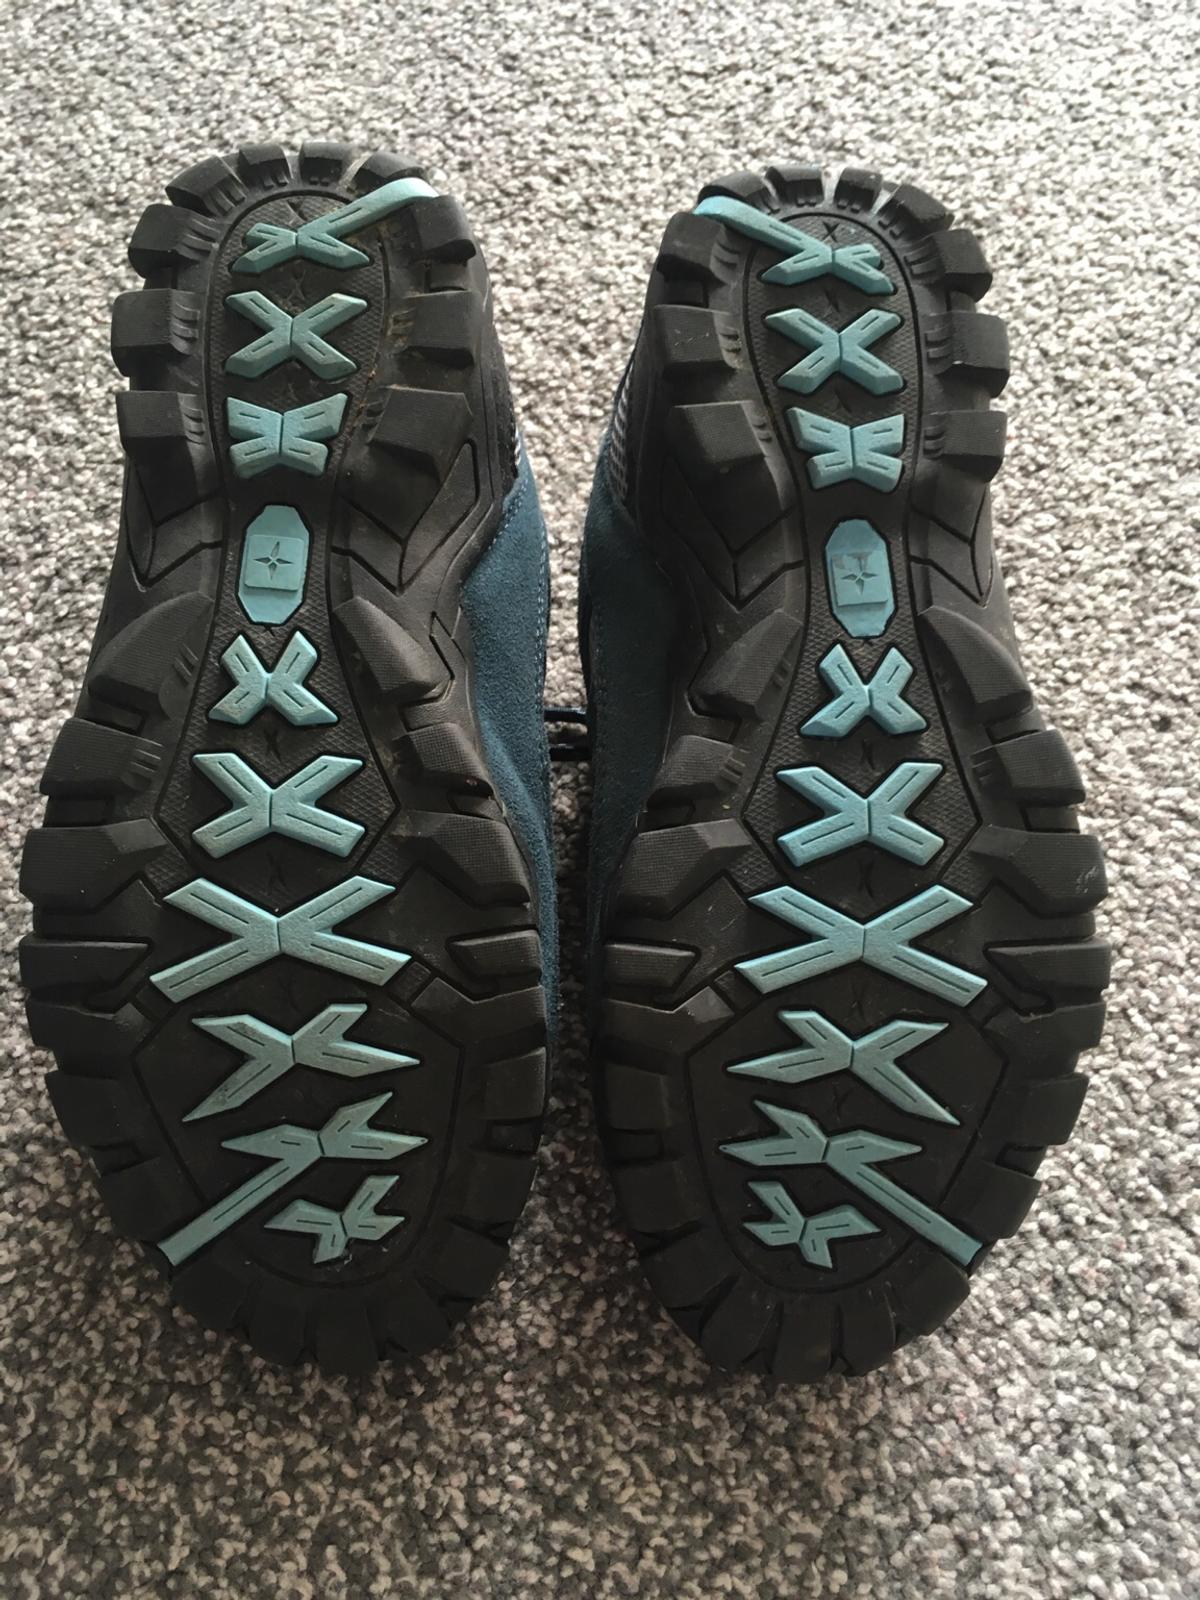 Mountain warehouse shoes Only worn a few times Excellent condition